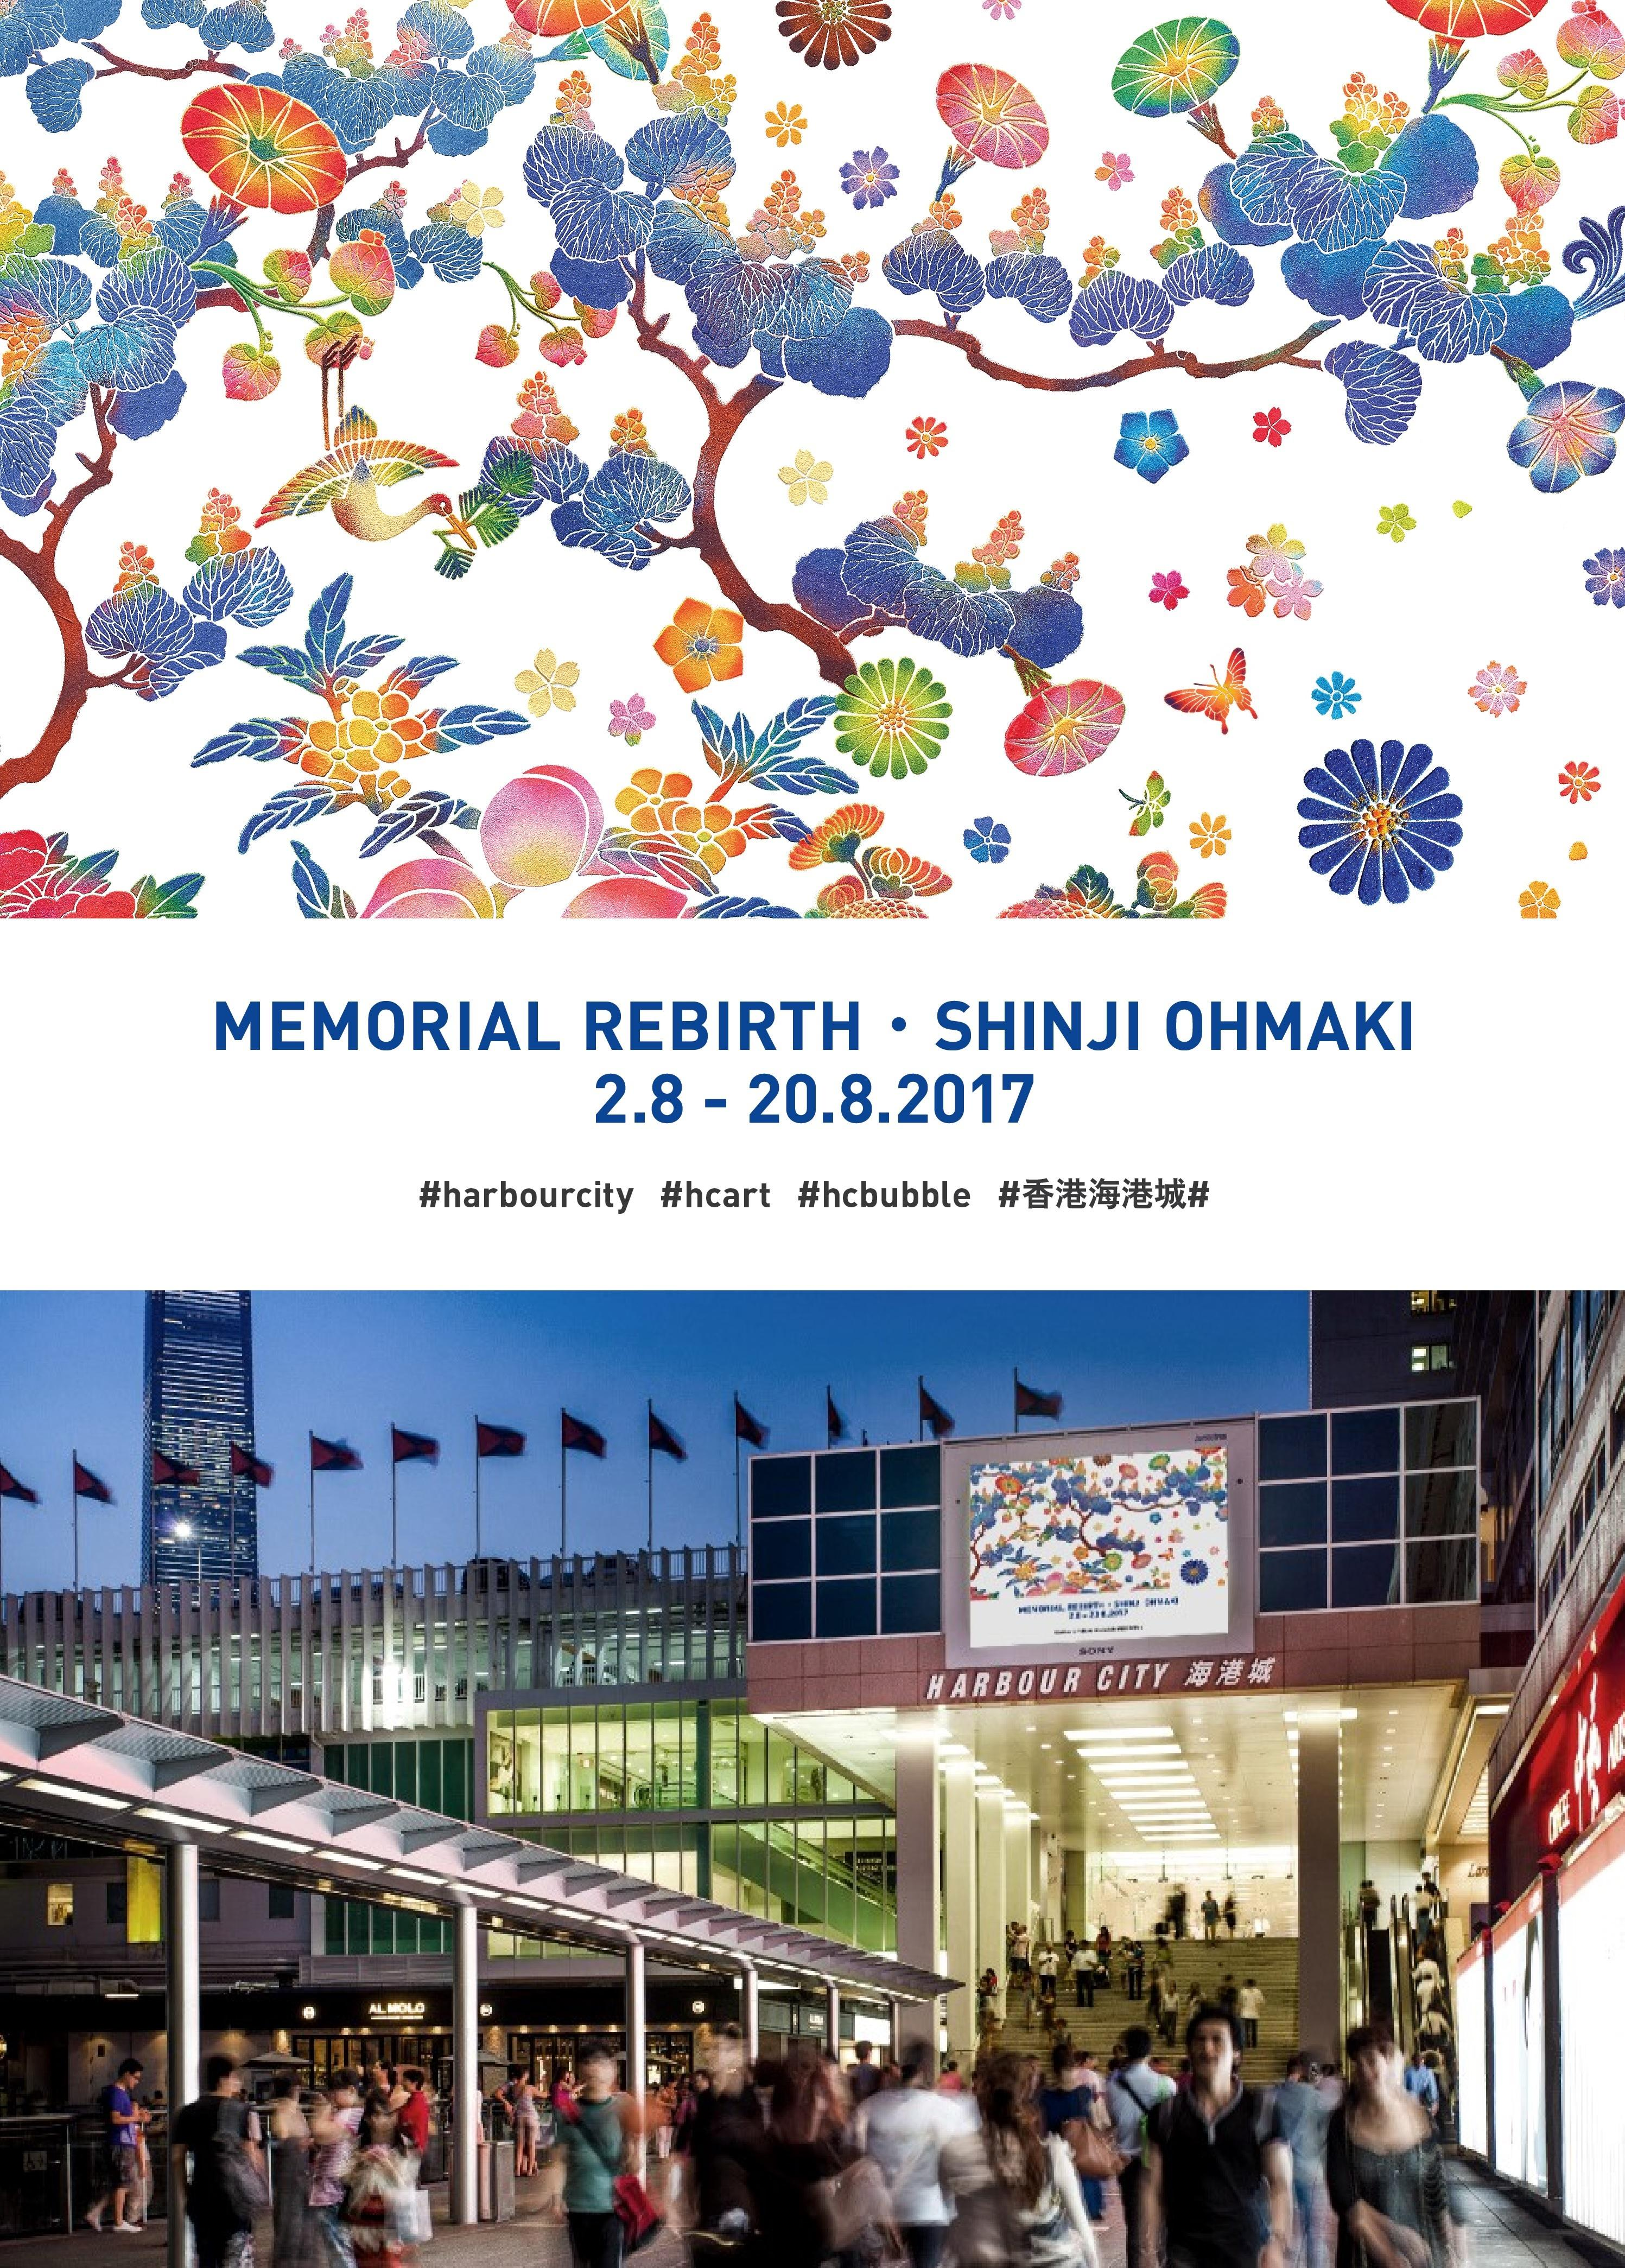 大巻伸嗣、「Memorial Rebirth」をHarbor City summer Public Art Projectに出展 @ Victoria Harbor, 香港